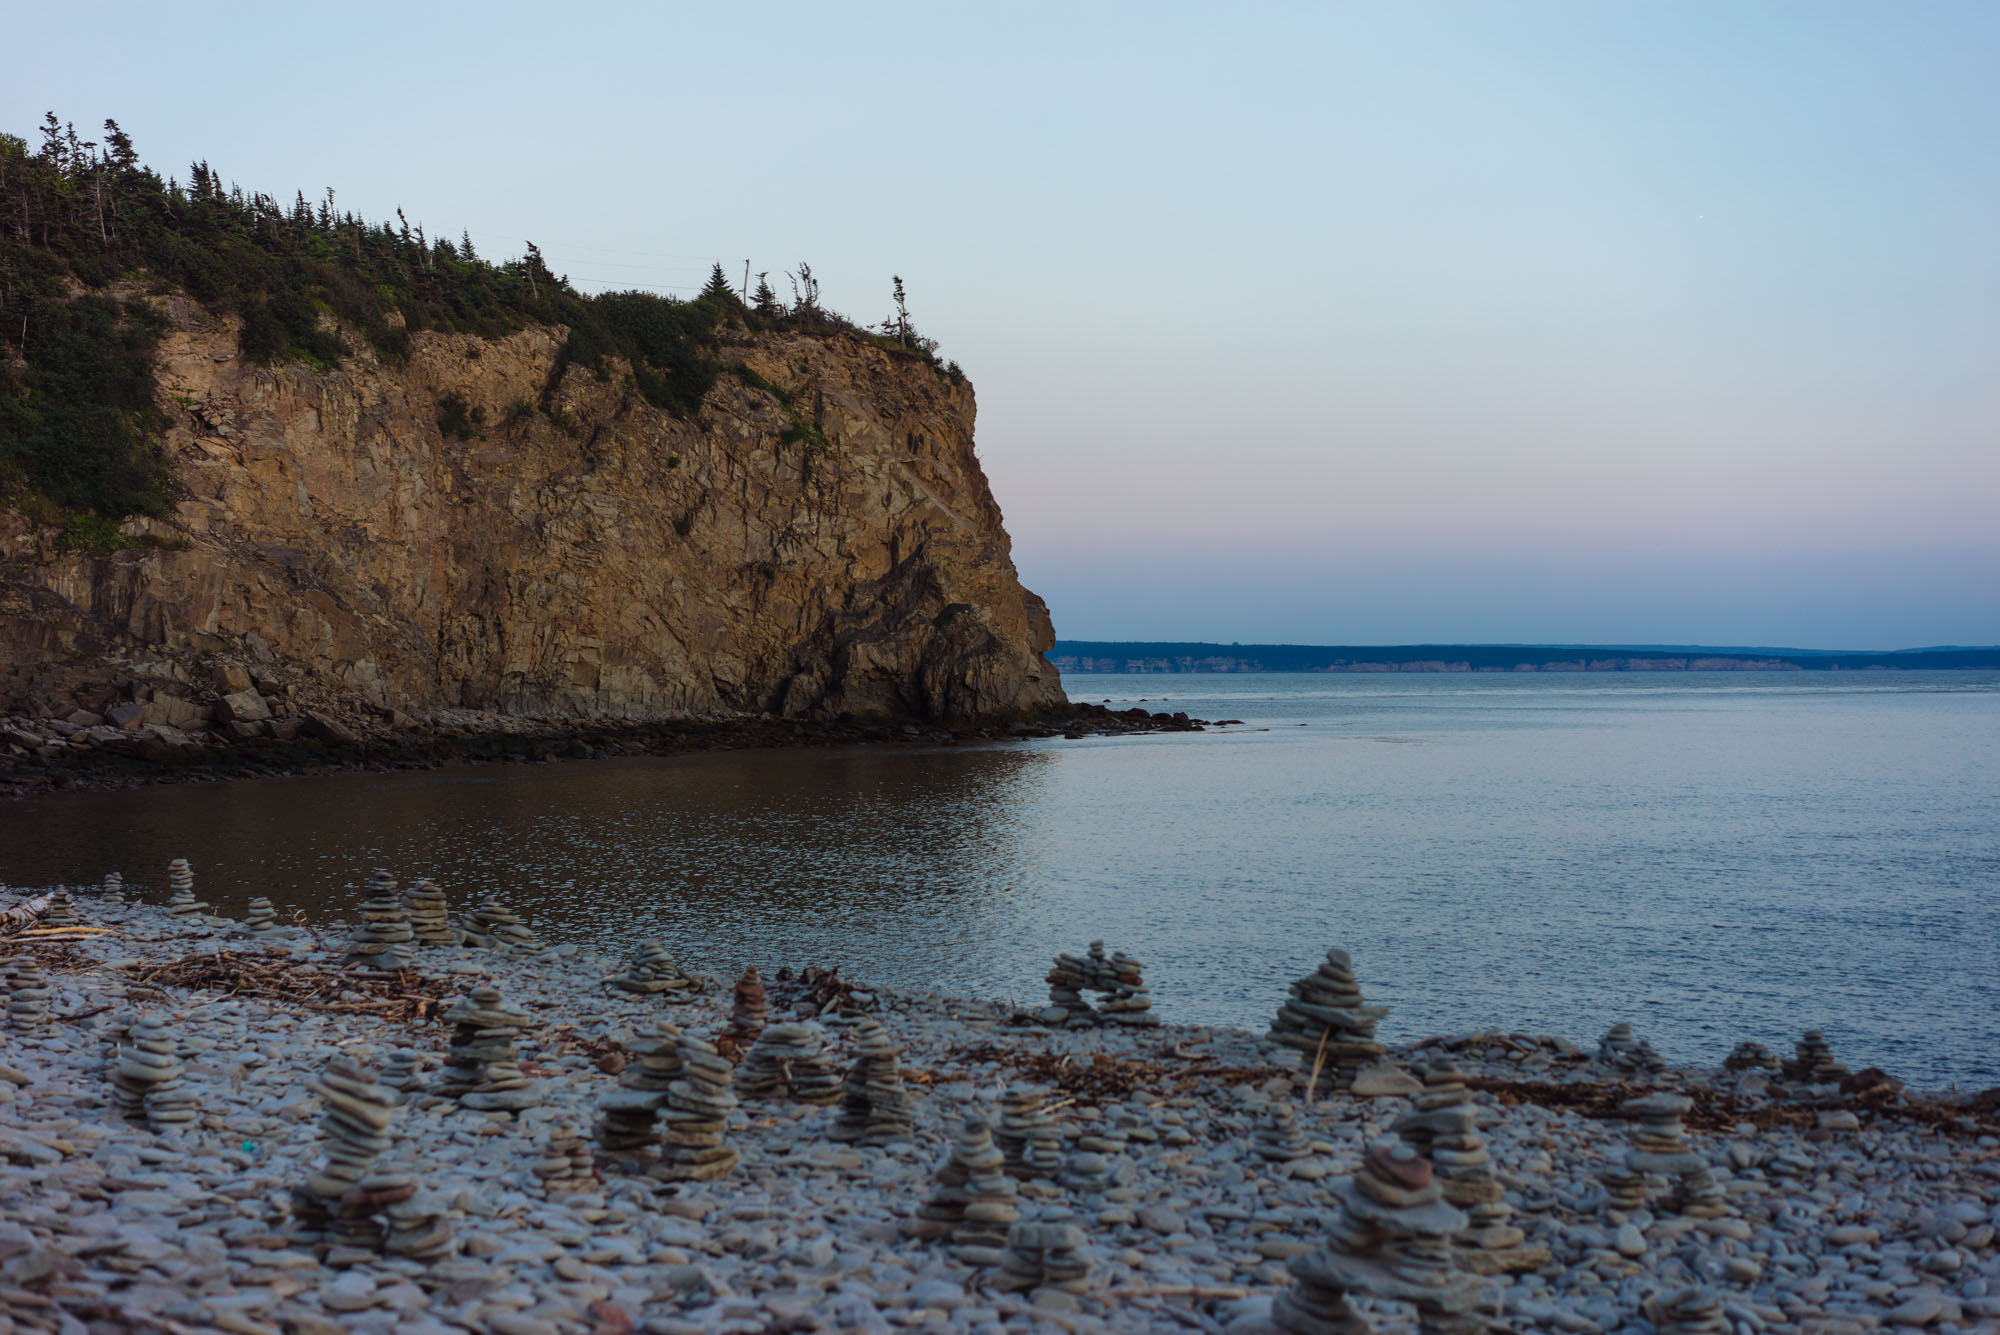 Camp on The Bay of Fundy